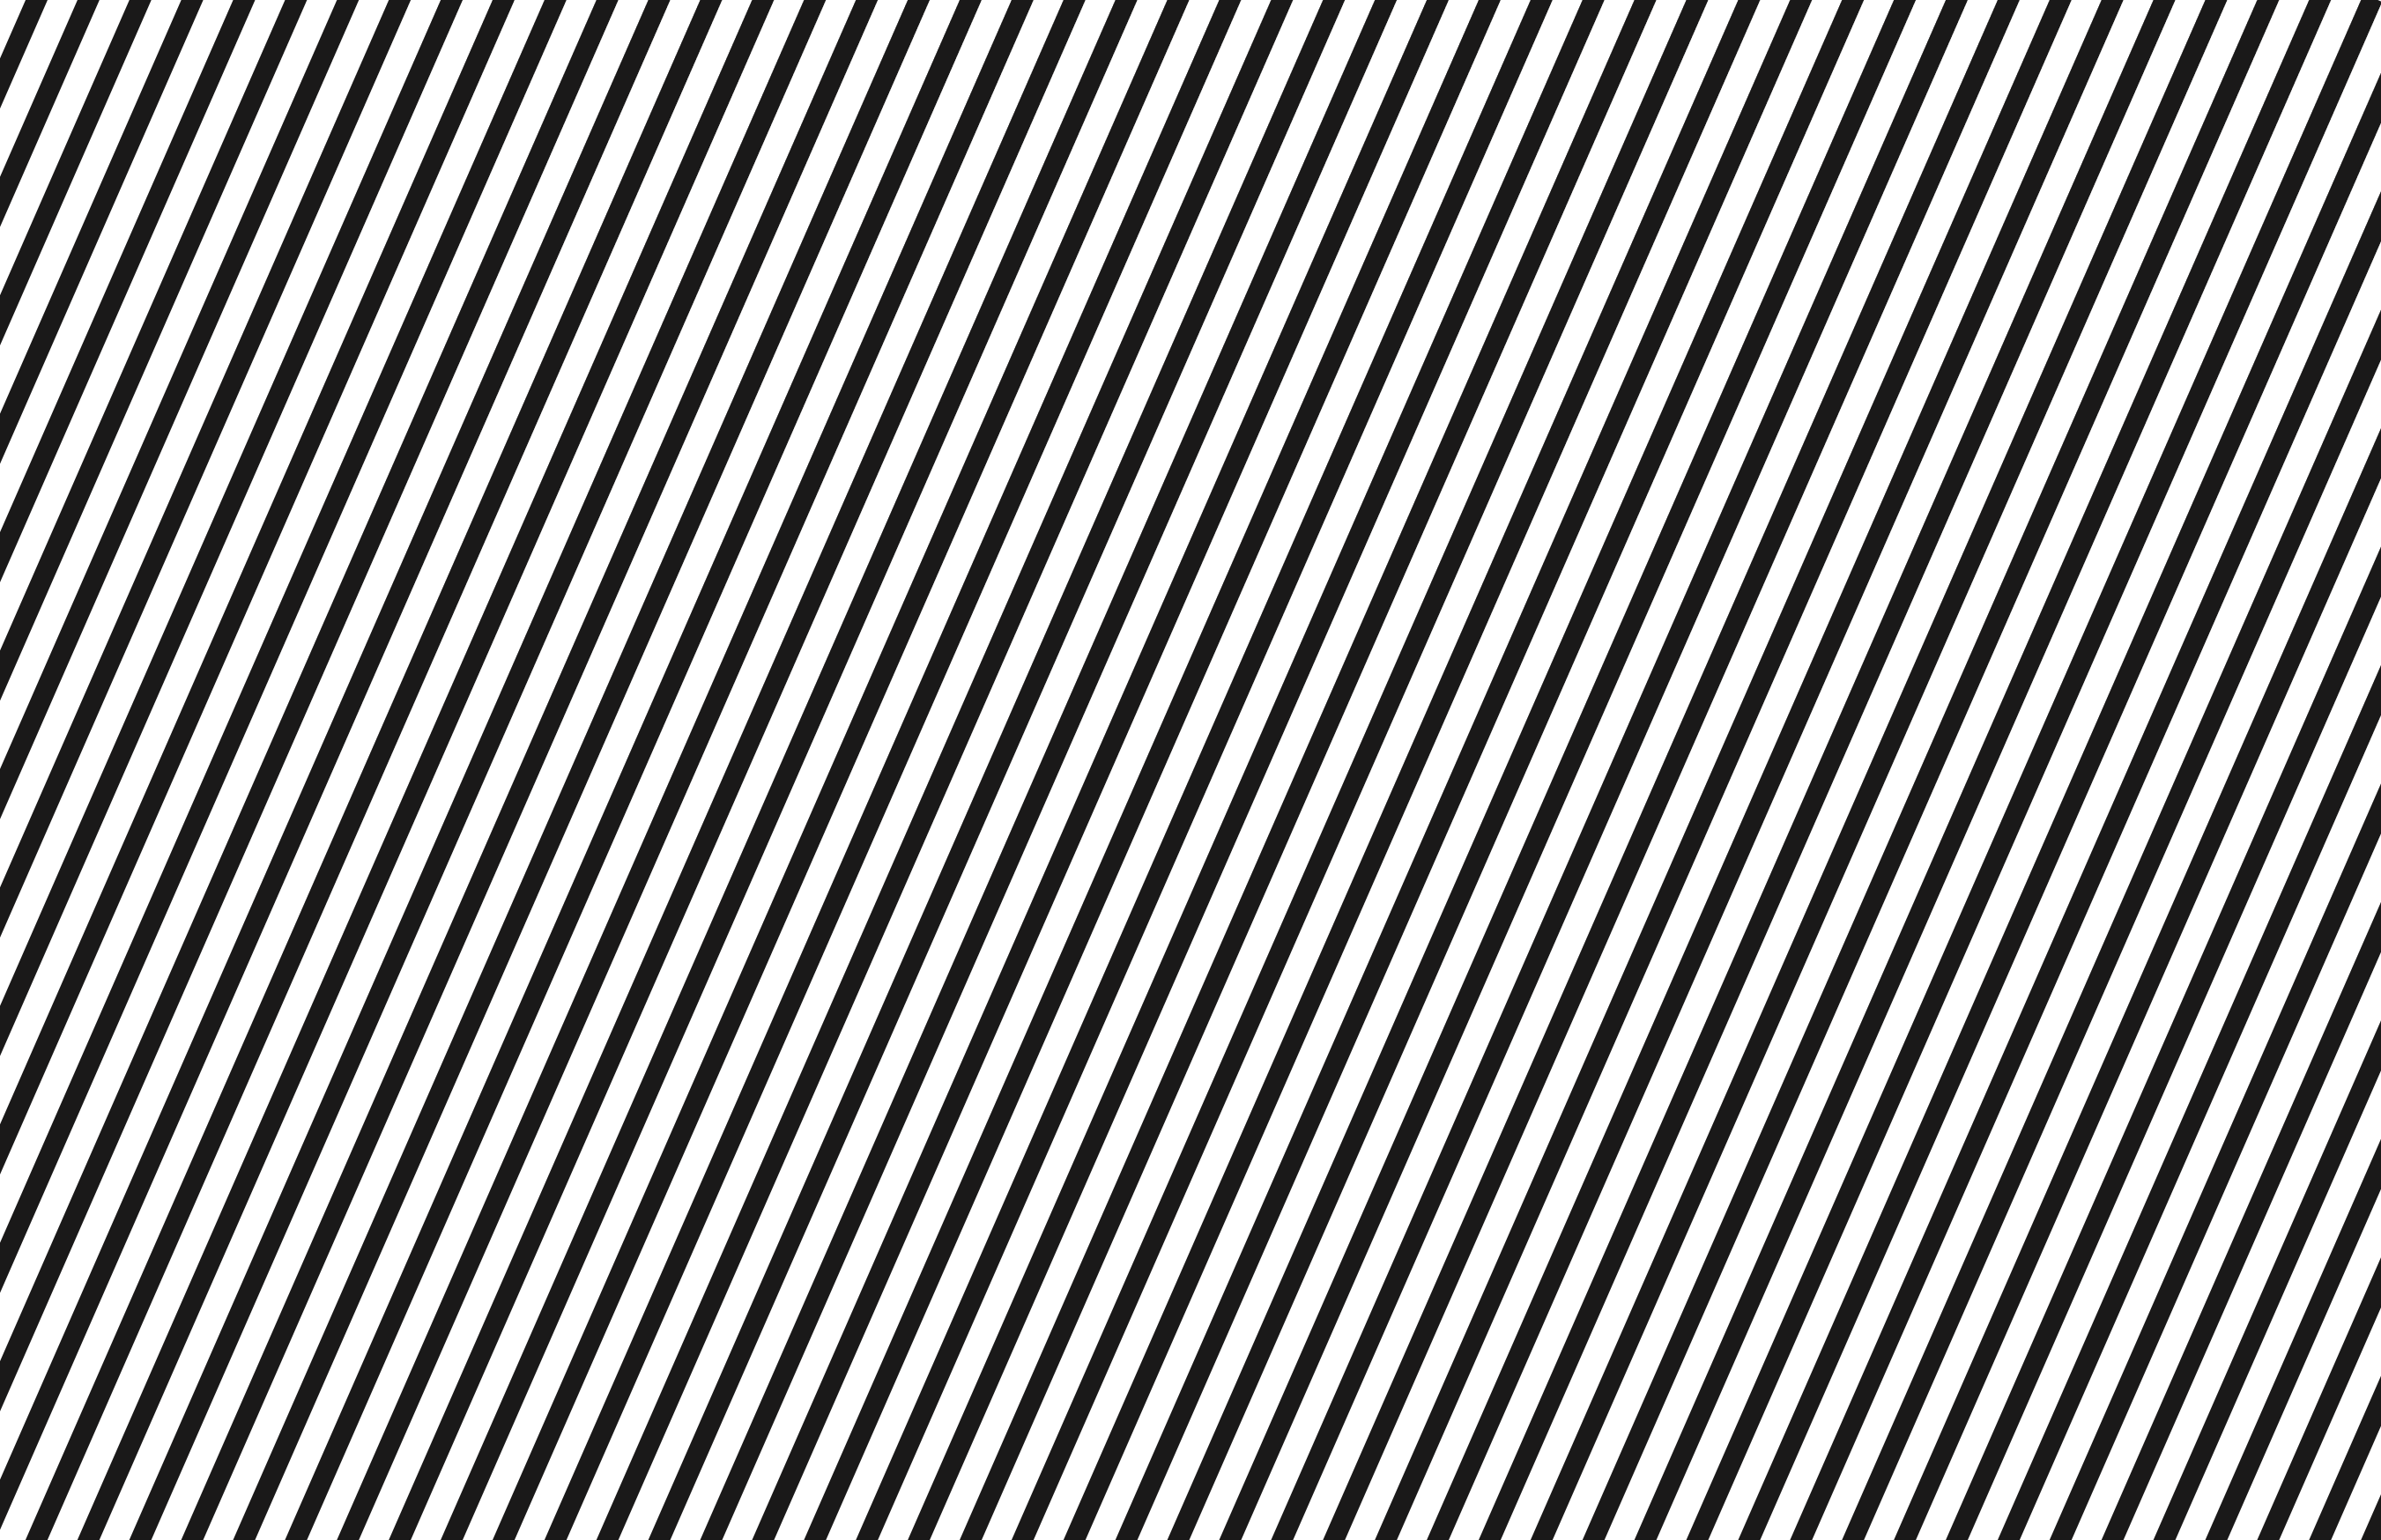 Lines PNG - 21937